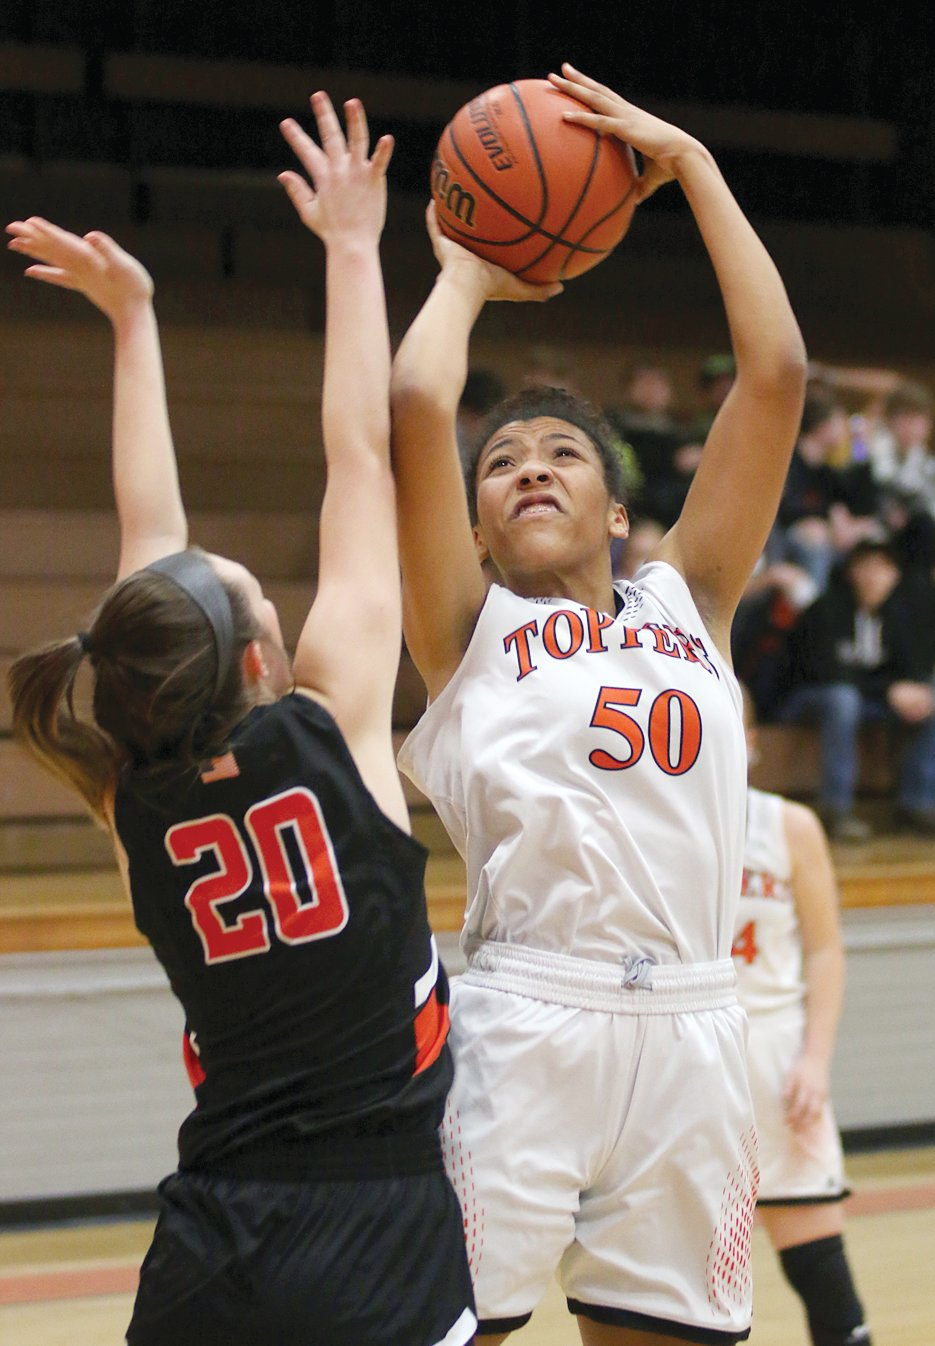 The Wesclin Warriors had little answer for Nikya Harston in the post as the Hillsboro junior scored 19 points in the Lady Hiltoppers' 61-46 win on Monday, Jan. 13.